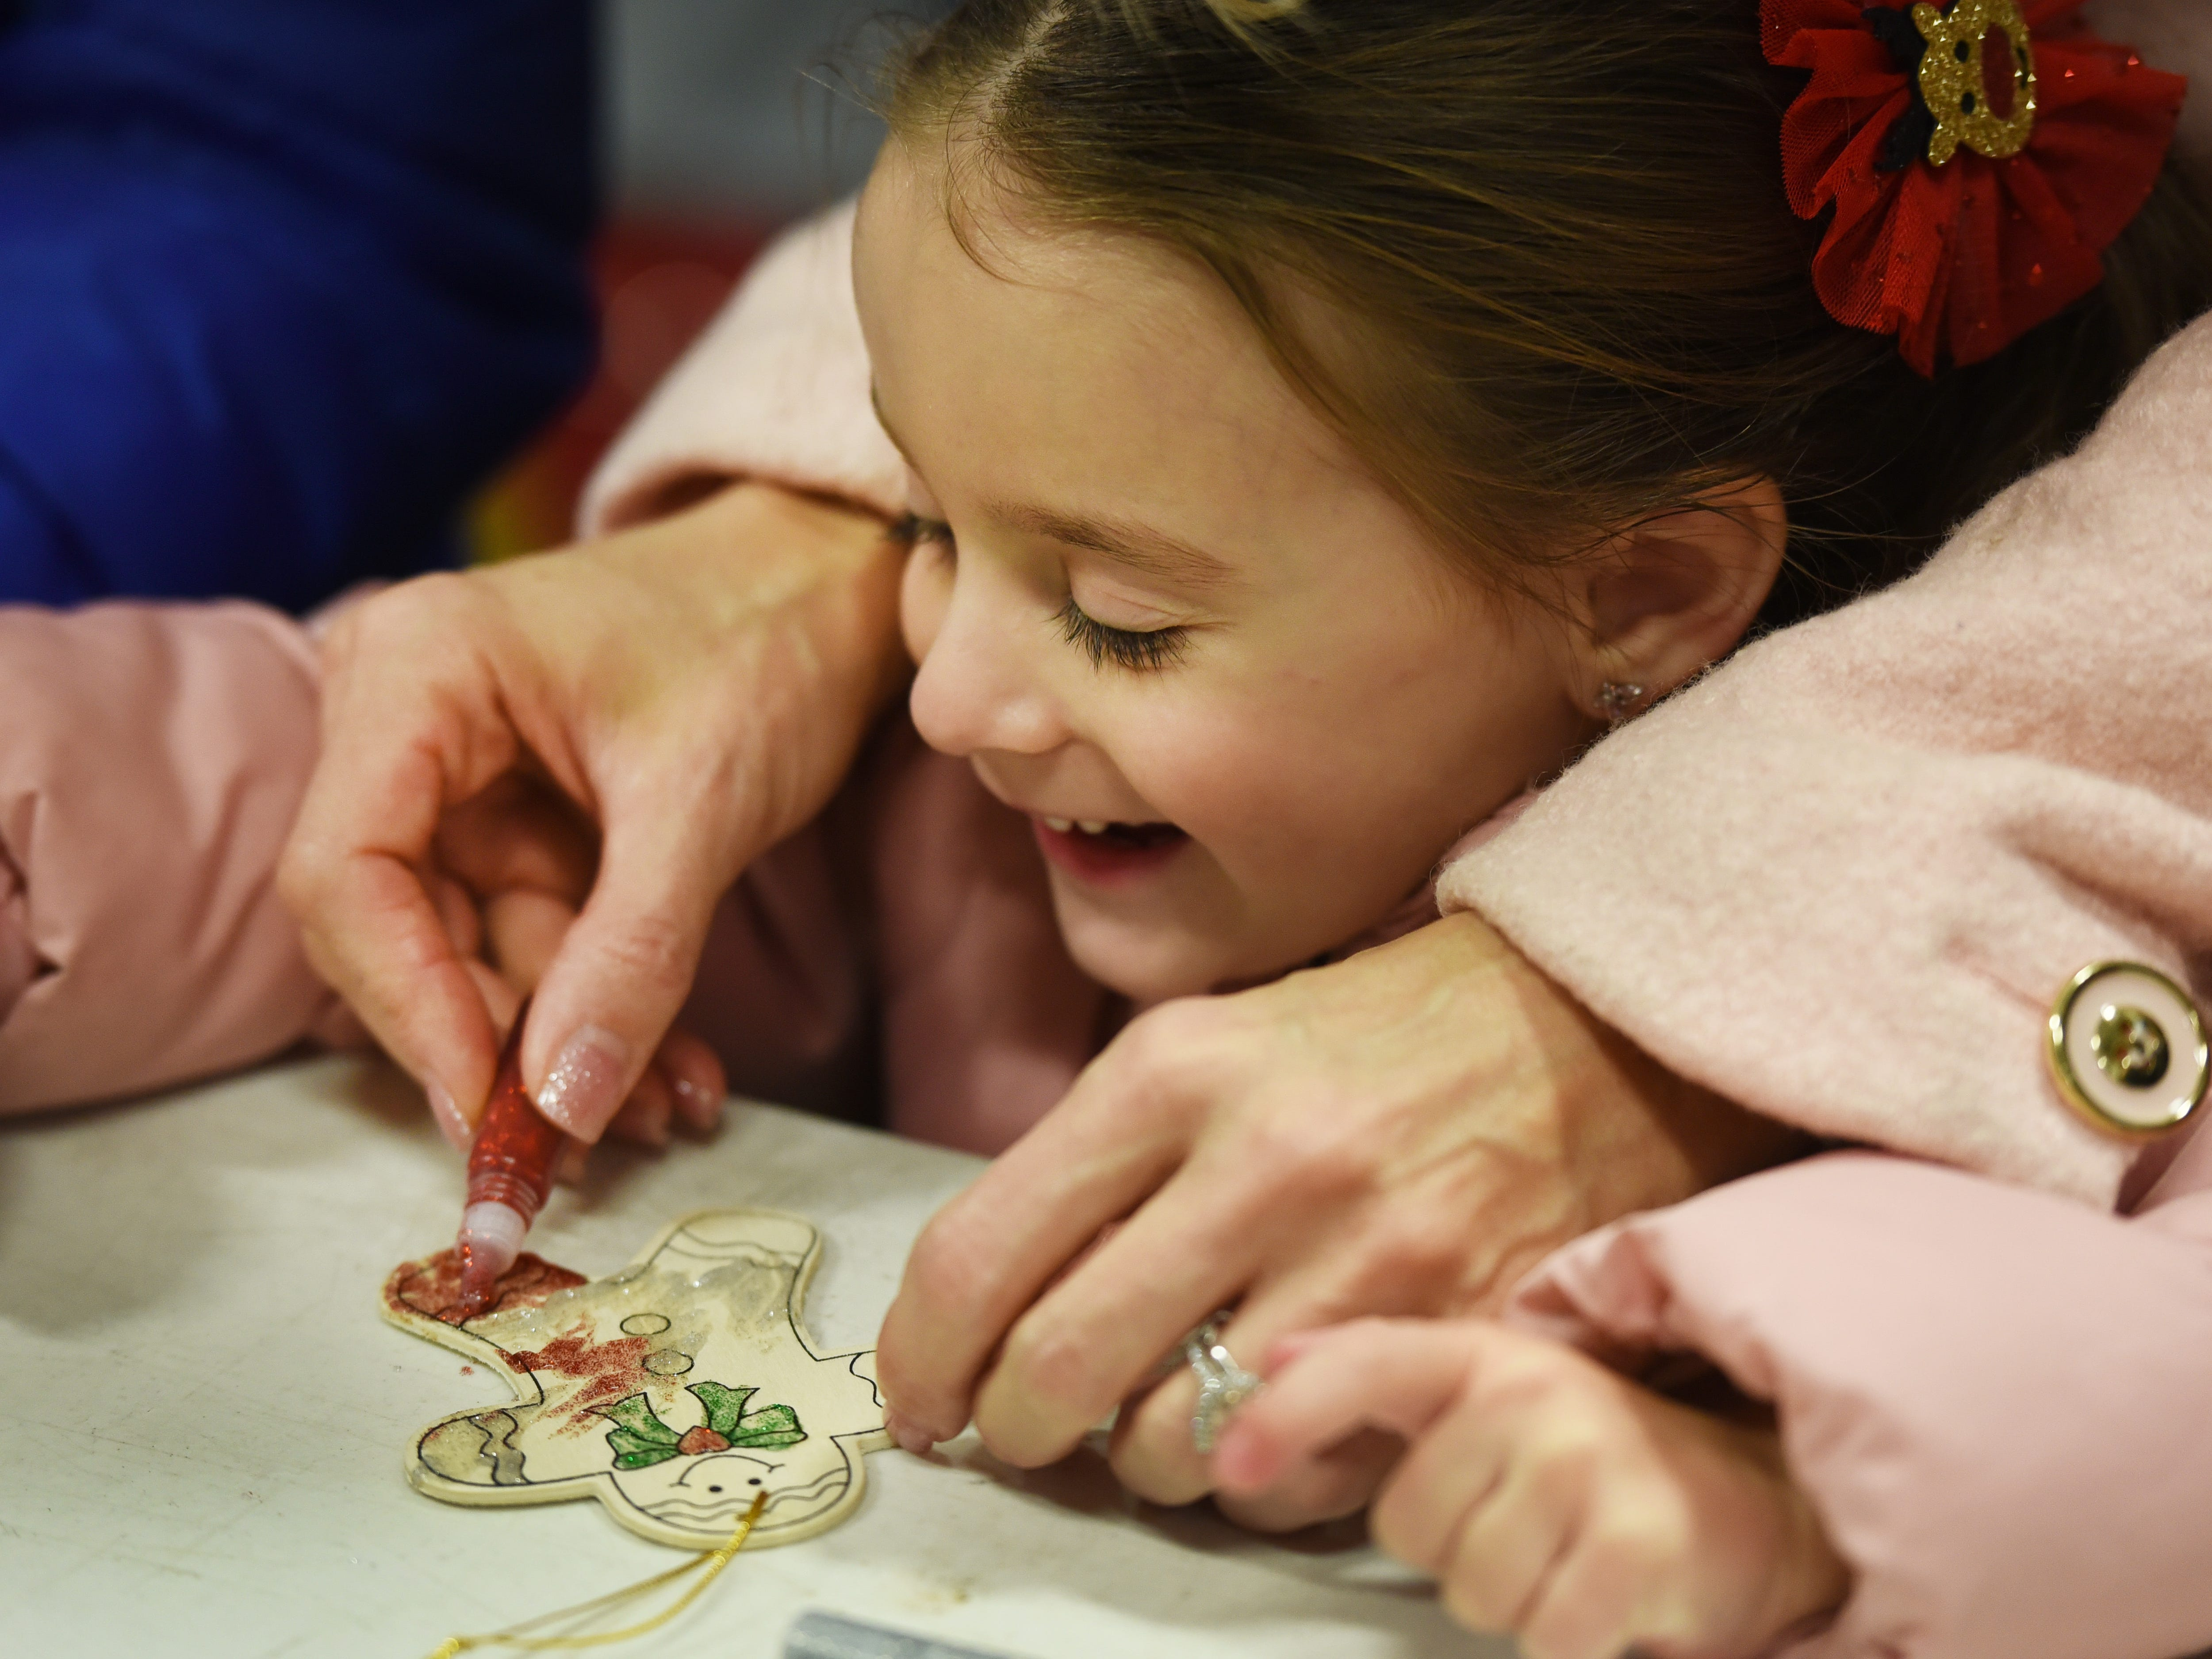 Jianna Lacapra (age 3) decorates an ornament helped by her mother Jodi prior to the Christmas Tree Lighting ceremony at Cedar Grove Town Hall on 12/03/18.